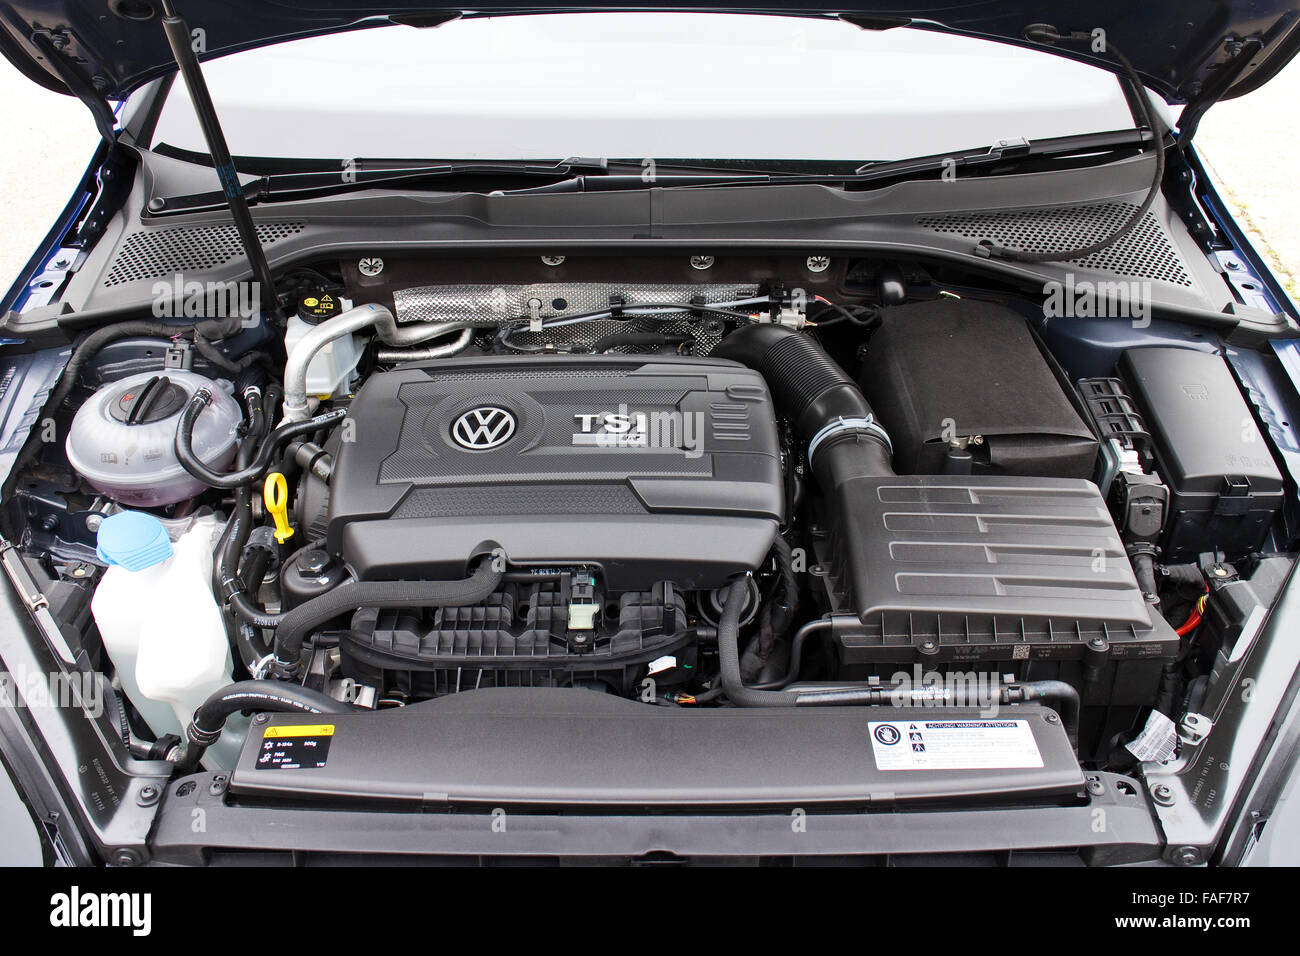 Hong Kong, China April 16, 2014 : Volkswagen Golf R 2014 2015 Version engine on April 16 2014 in Hong Kong. - Stock Image